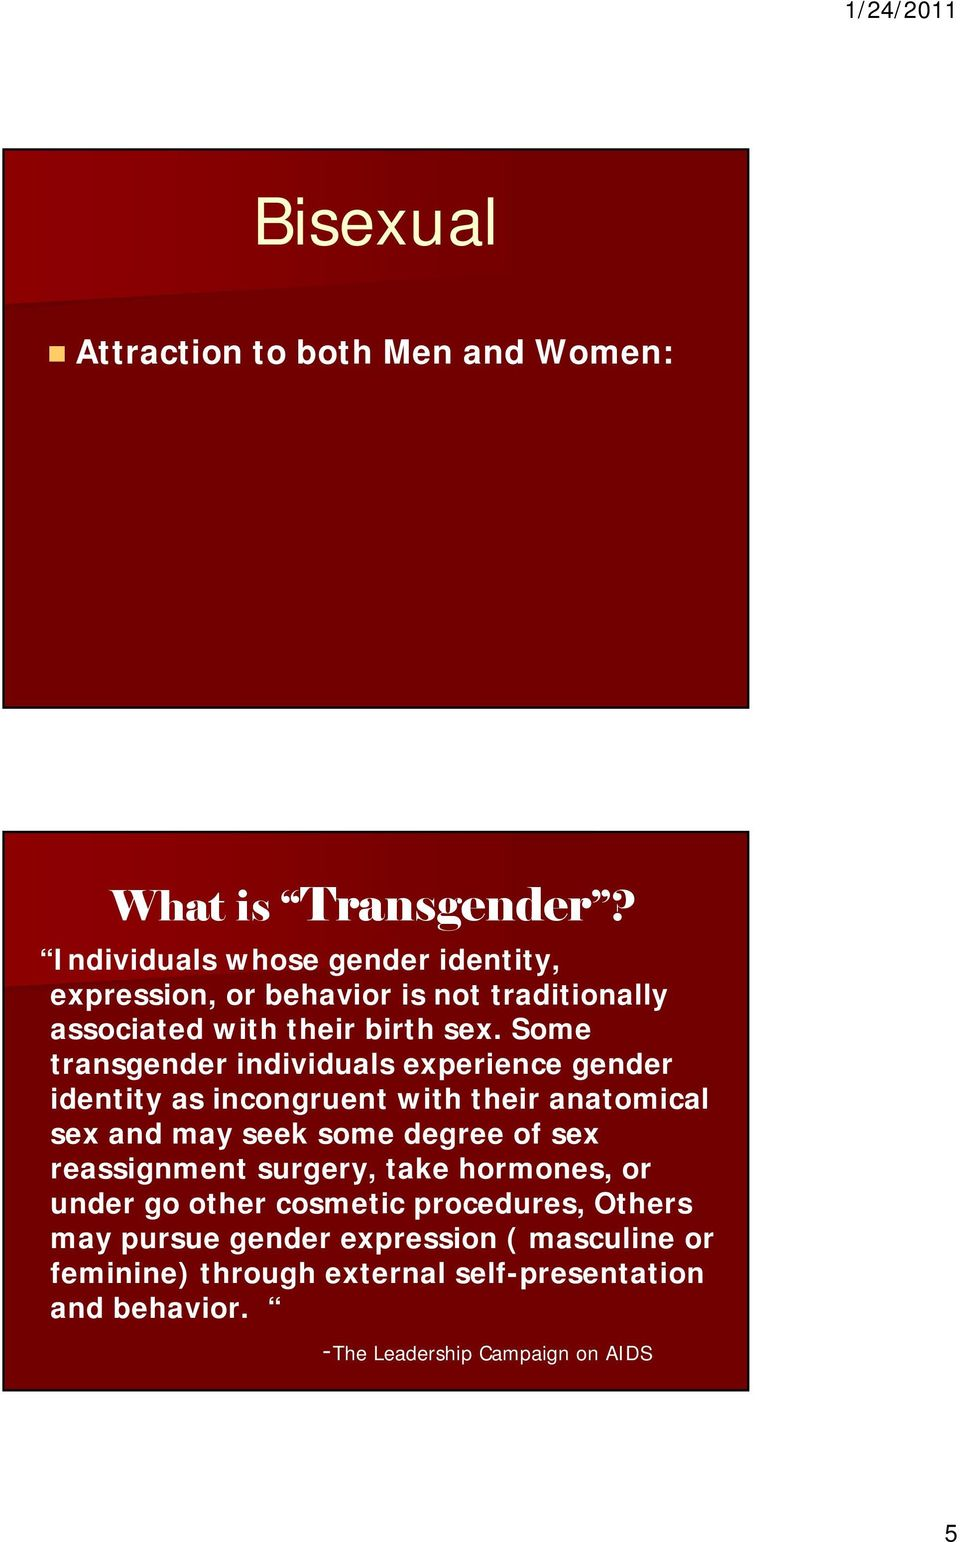 Some transgender individuals experience gender identity as incongruent with their anatomical sex and may seek some degree of sex